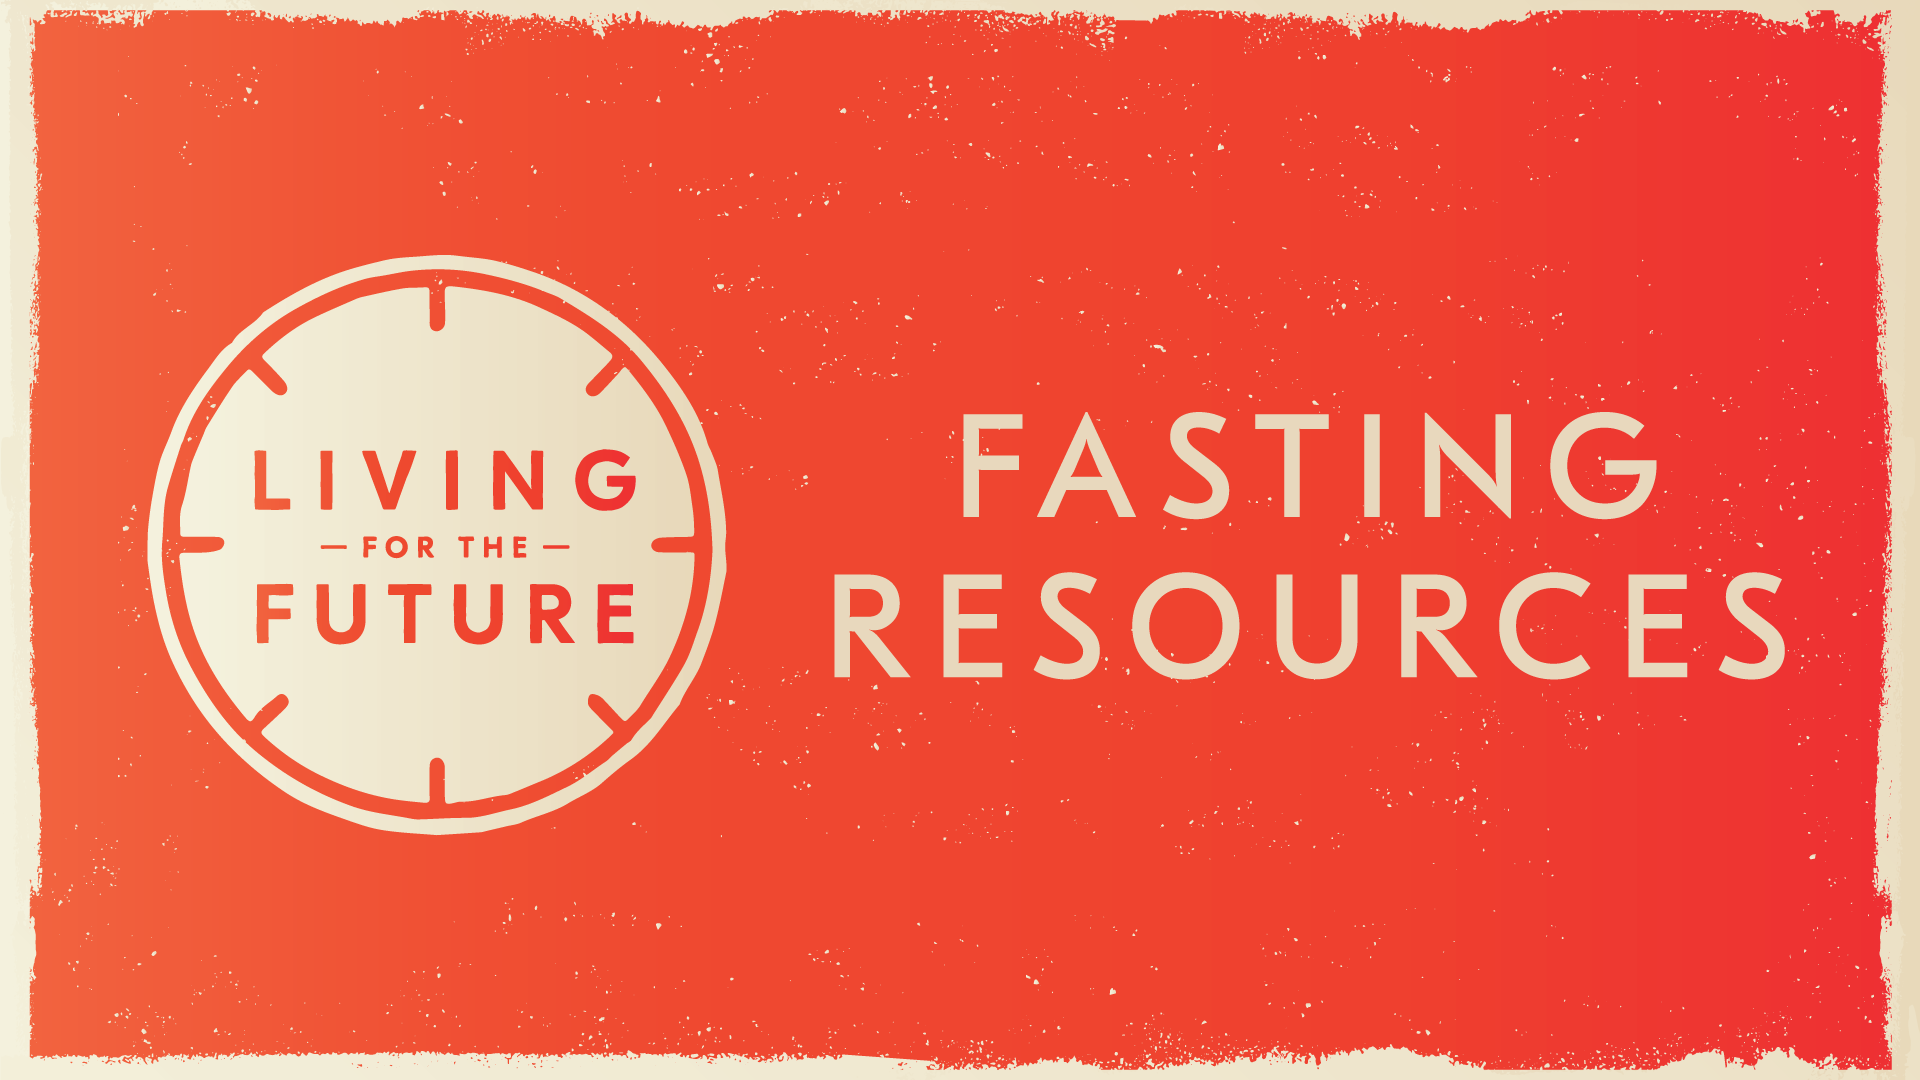 Fasting Resources    December 27th, 2018